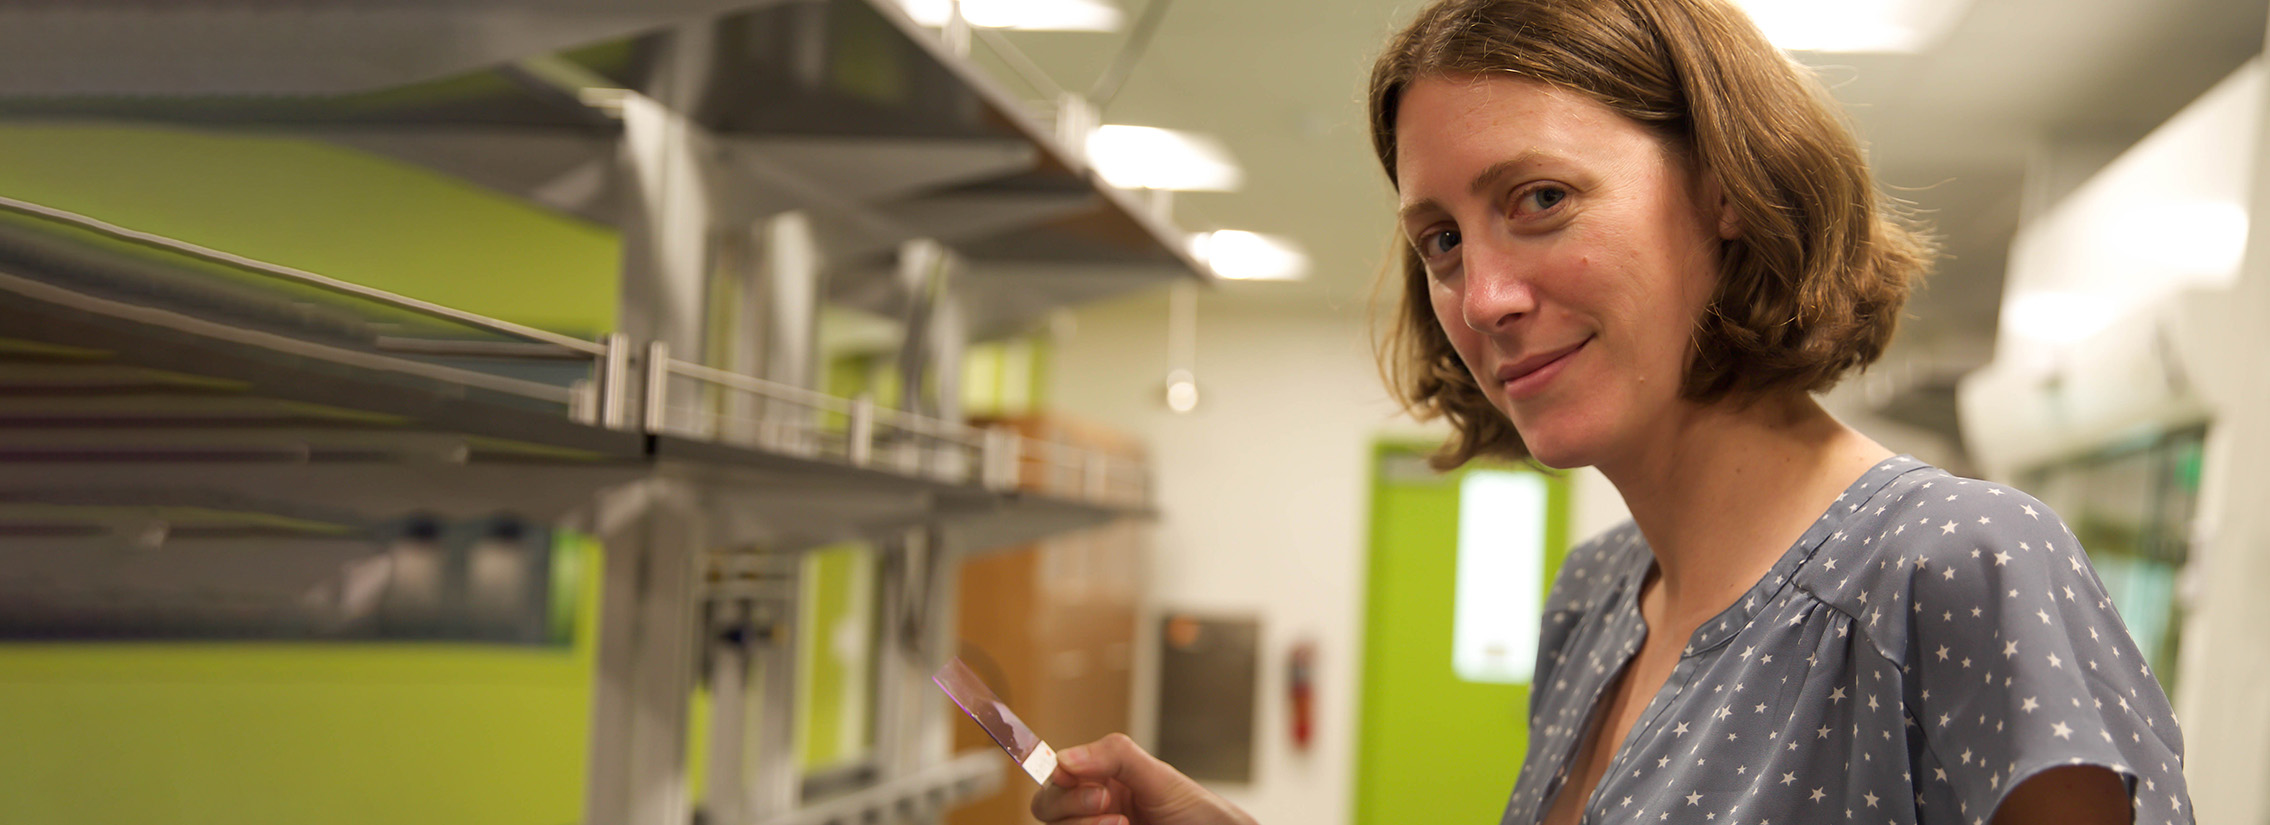 A white woman with short light brown hair holding a microscope slide in a science lab.